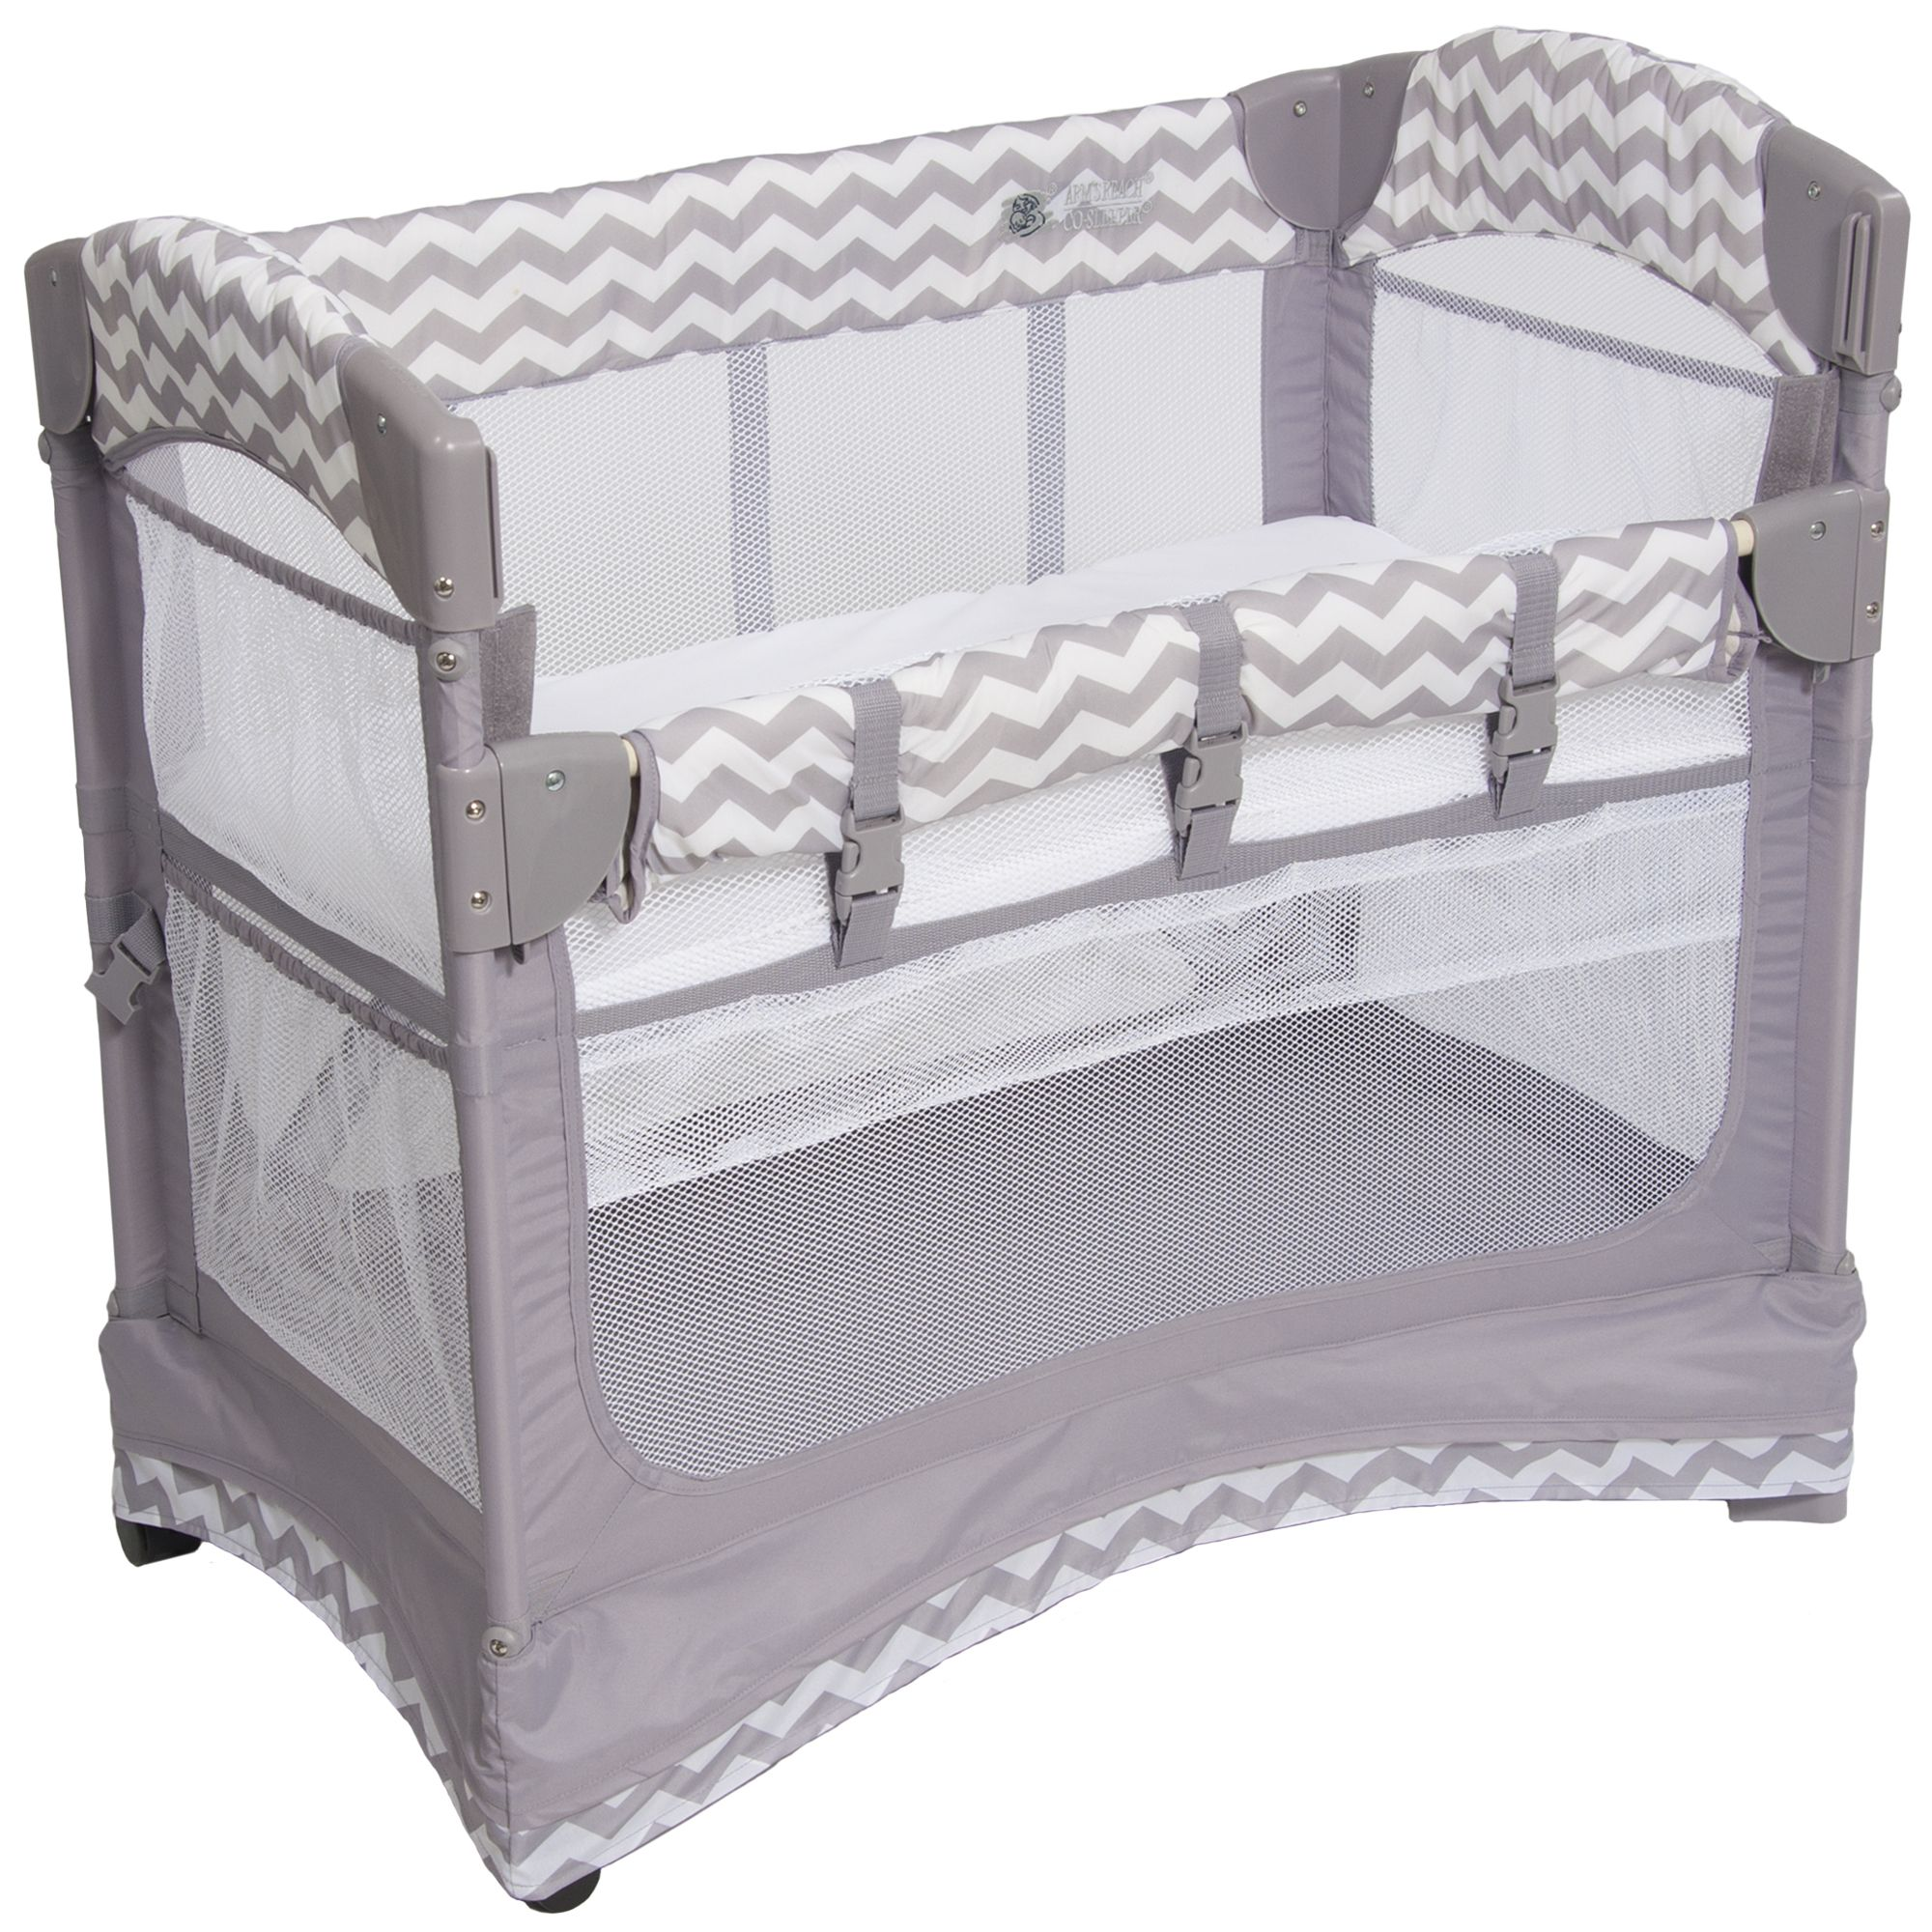 Iron crib for sale craigslist - Mini Arc Co Sleeper Way Cheaper On Craigslist With Tons Of Different Color Options